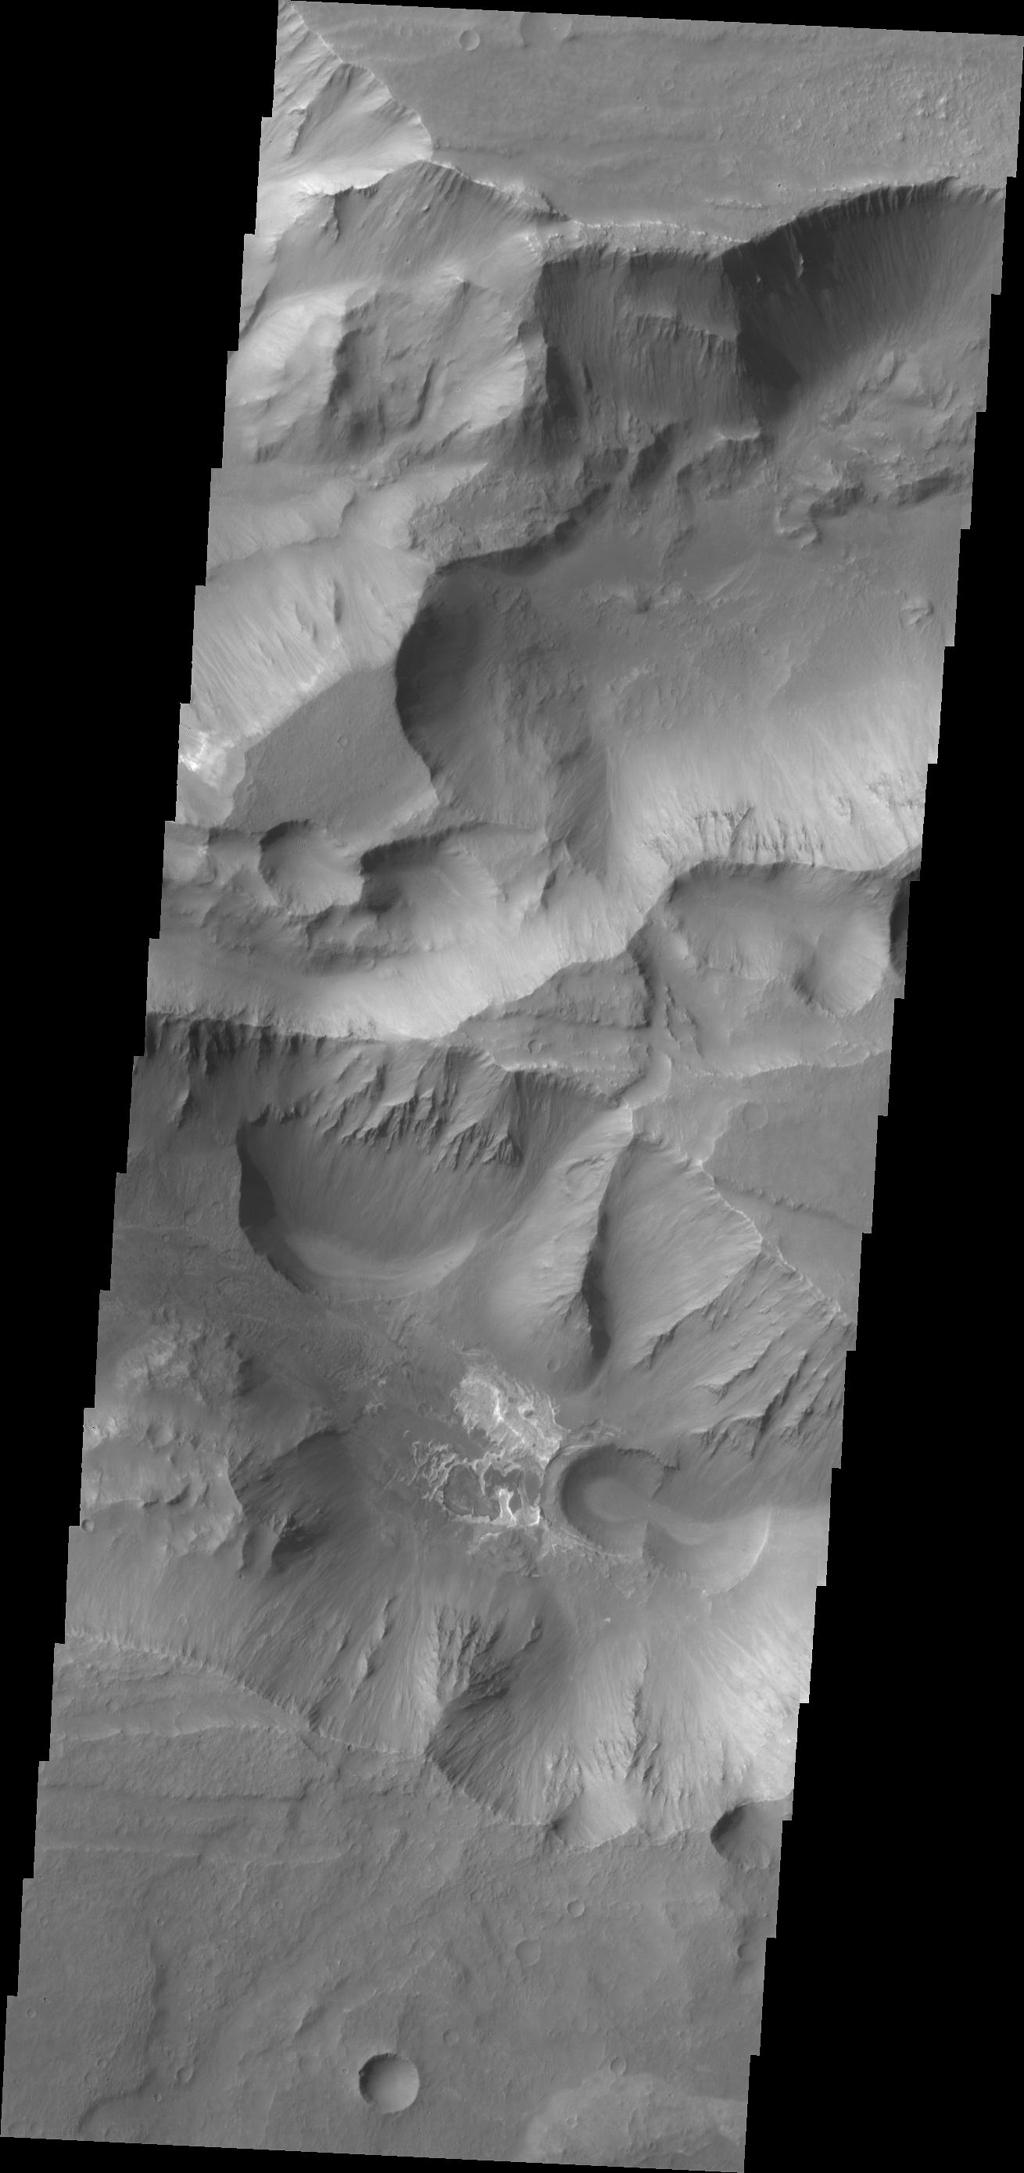 This image from NASA's 2001 Mars Odyssey spacecraft shows a small portion of the floor of Coprates Catena, just south of the Valles Marineris canyon system. The lighter toned materials in the center of the image are layered deposits.